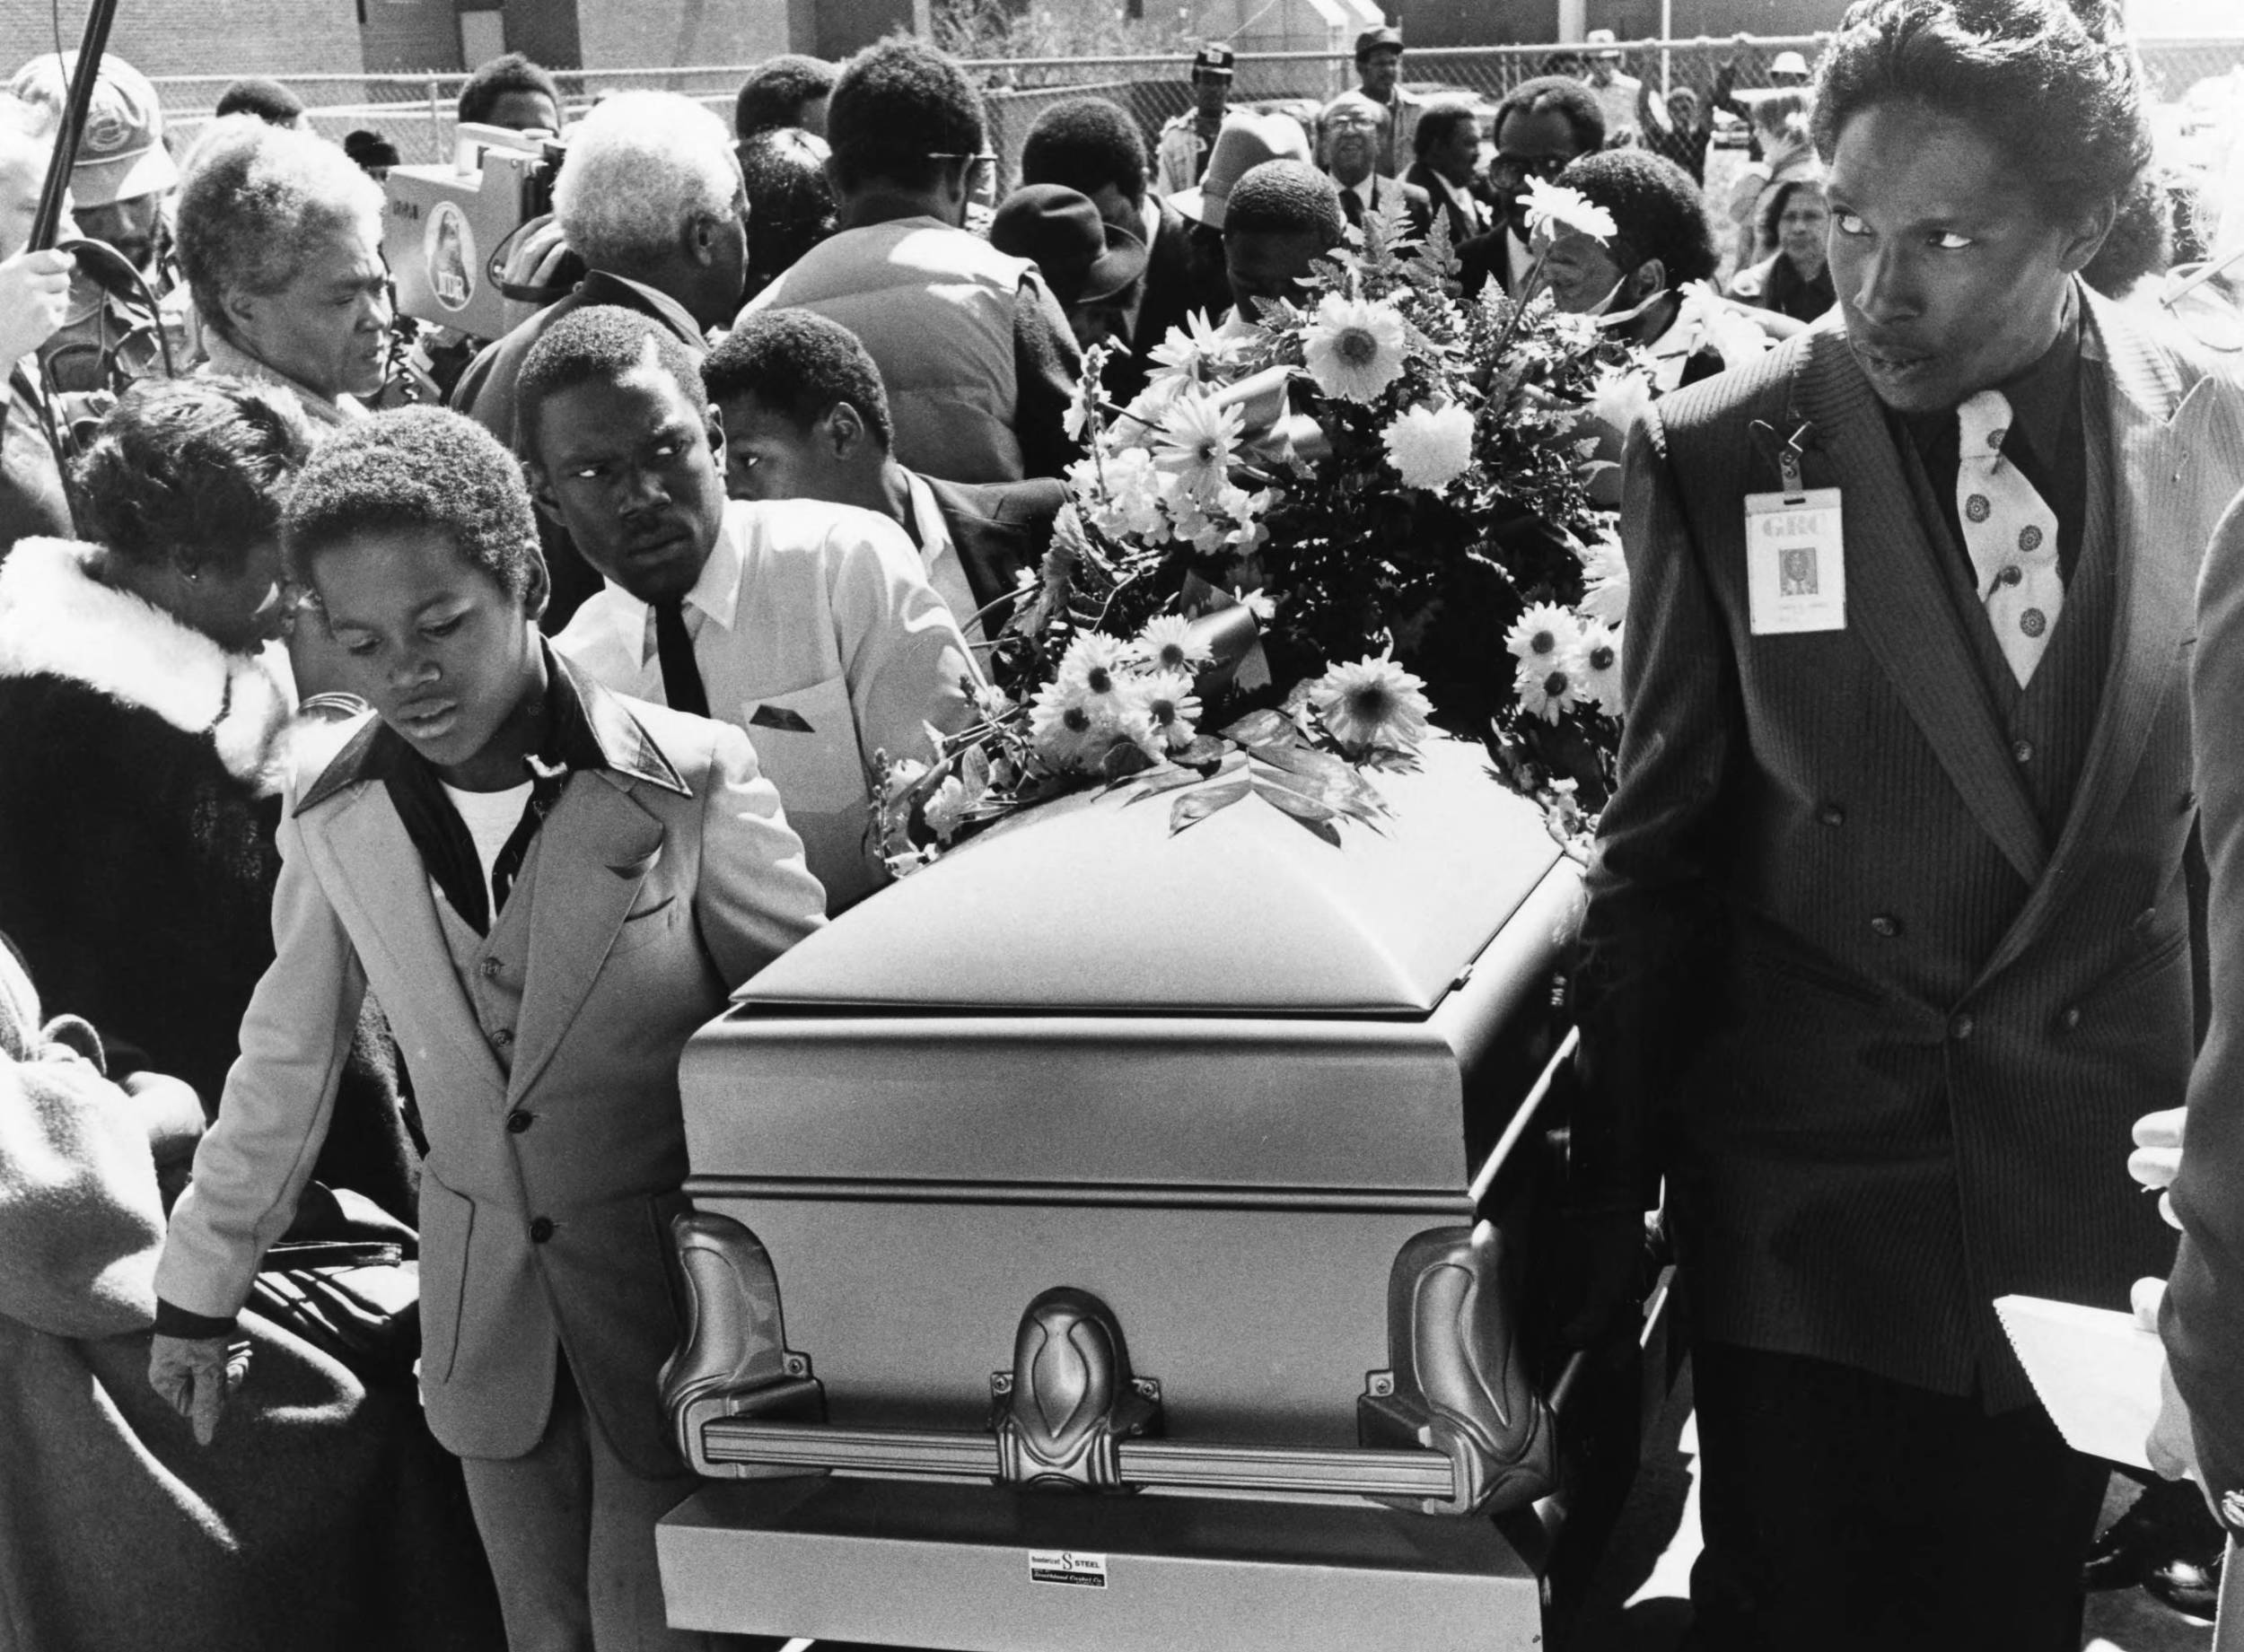 Funeral service for Curtis Walker.  Photograph by Bill Mahan (1981) Atlanta Journal-Constitution Photographic Archives. Special Collections and Archives, Georgia State University Library.